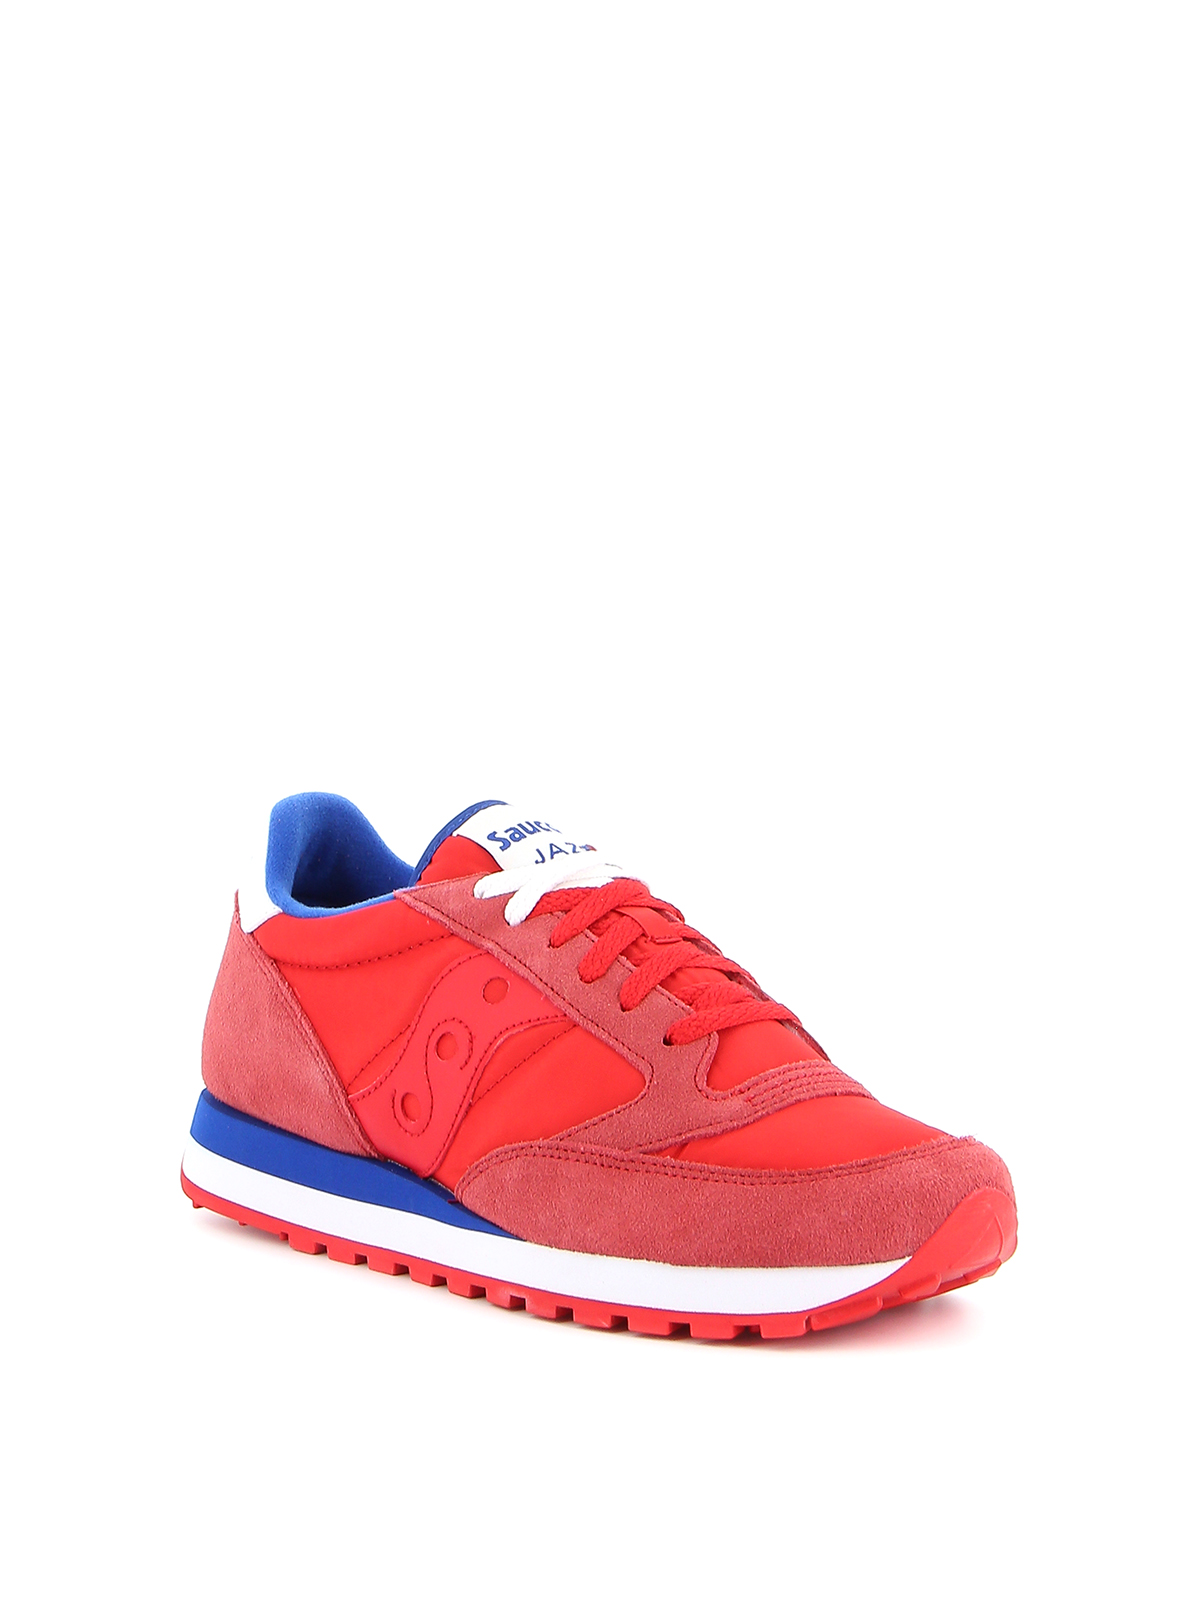 Jazz Original red and blue trainers